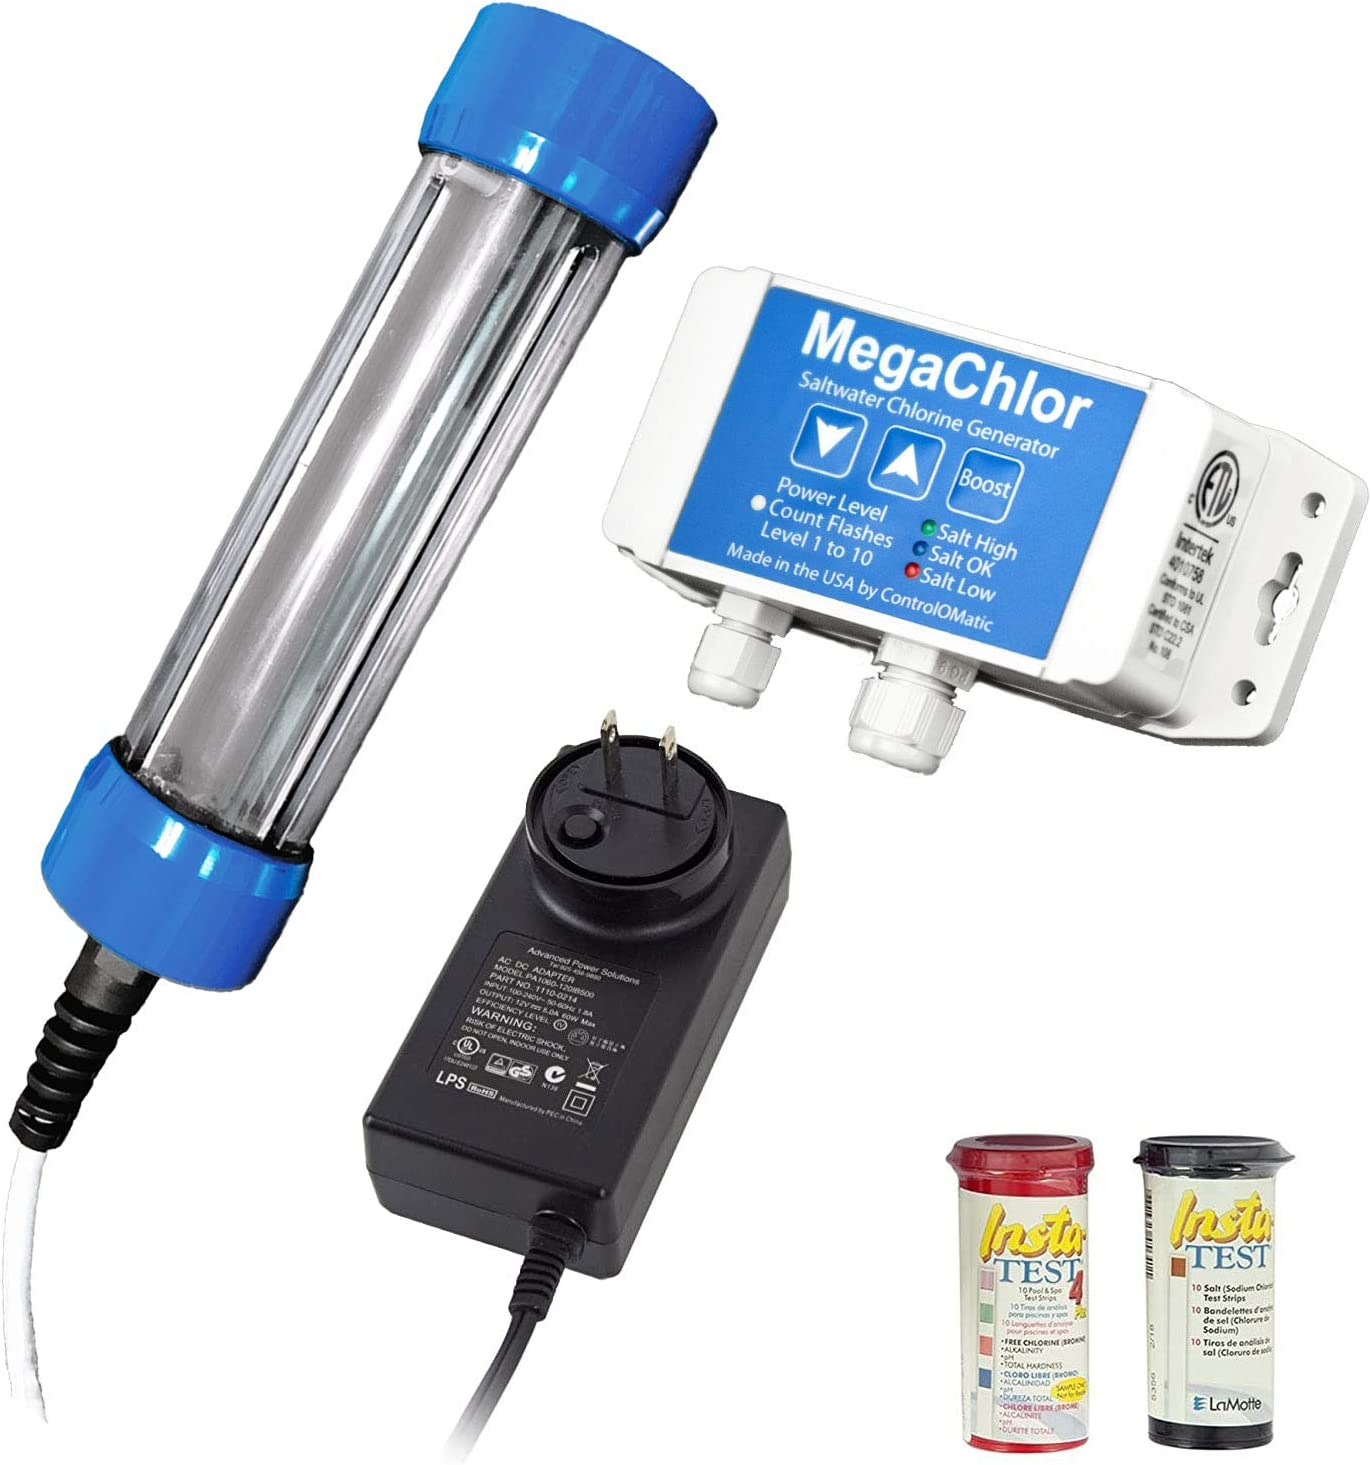 MegaChlor DO Salt Water Pool and Swim Spa Chlorine Generator, Drape Over Easy Install with 10 Power Levels, Boost Mode and Control Box